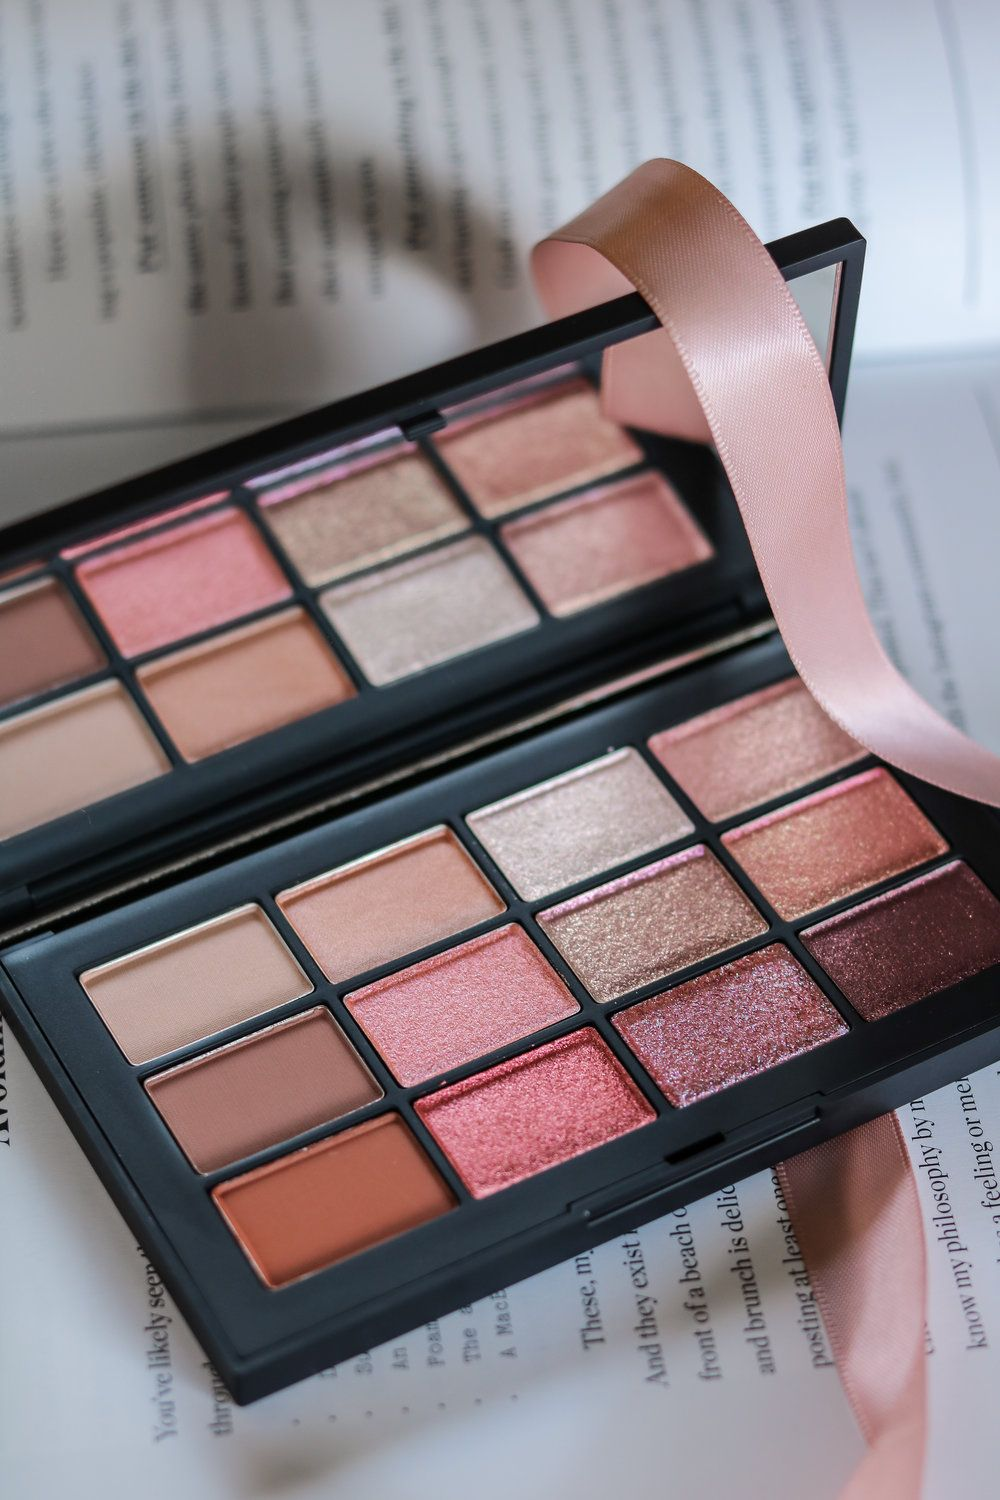 NARS IGNITED EYESHADOW PALETTE REVIEW & SWATCHES Pink